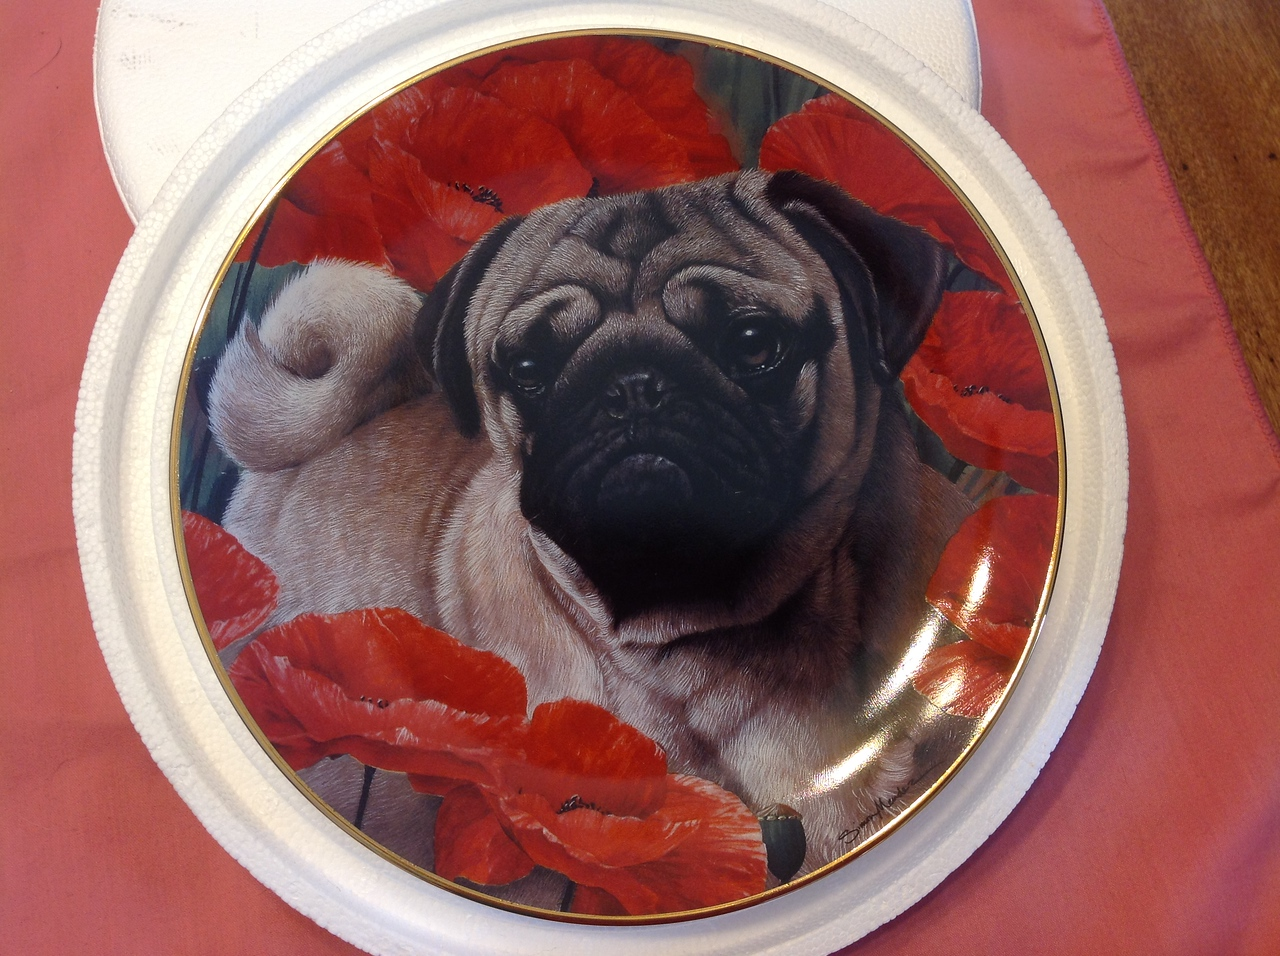 """Danbury Mint Plate """"Poppy Love"""" by Simon Mendez in the Pug collection. Plate #C6430<br /> <br /> Winner pays shipping<br /> <br /> Starting bid $10"""